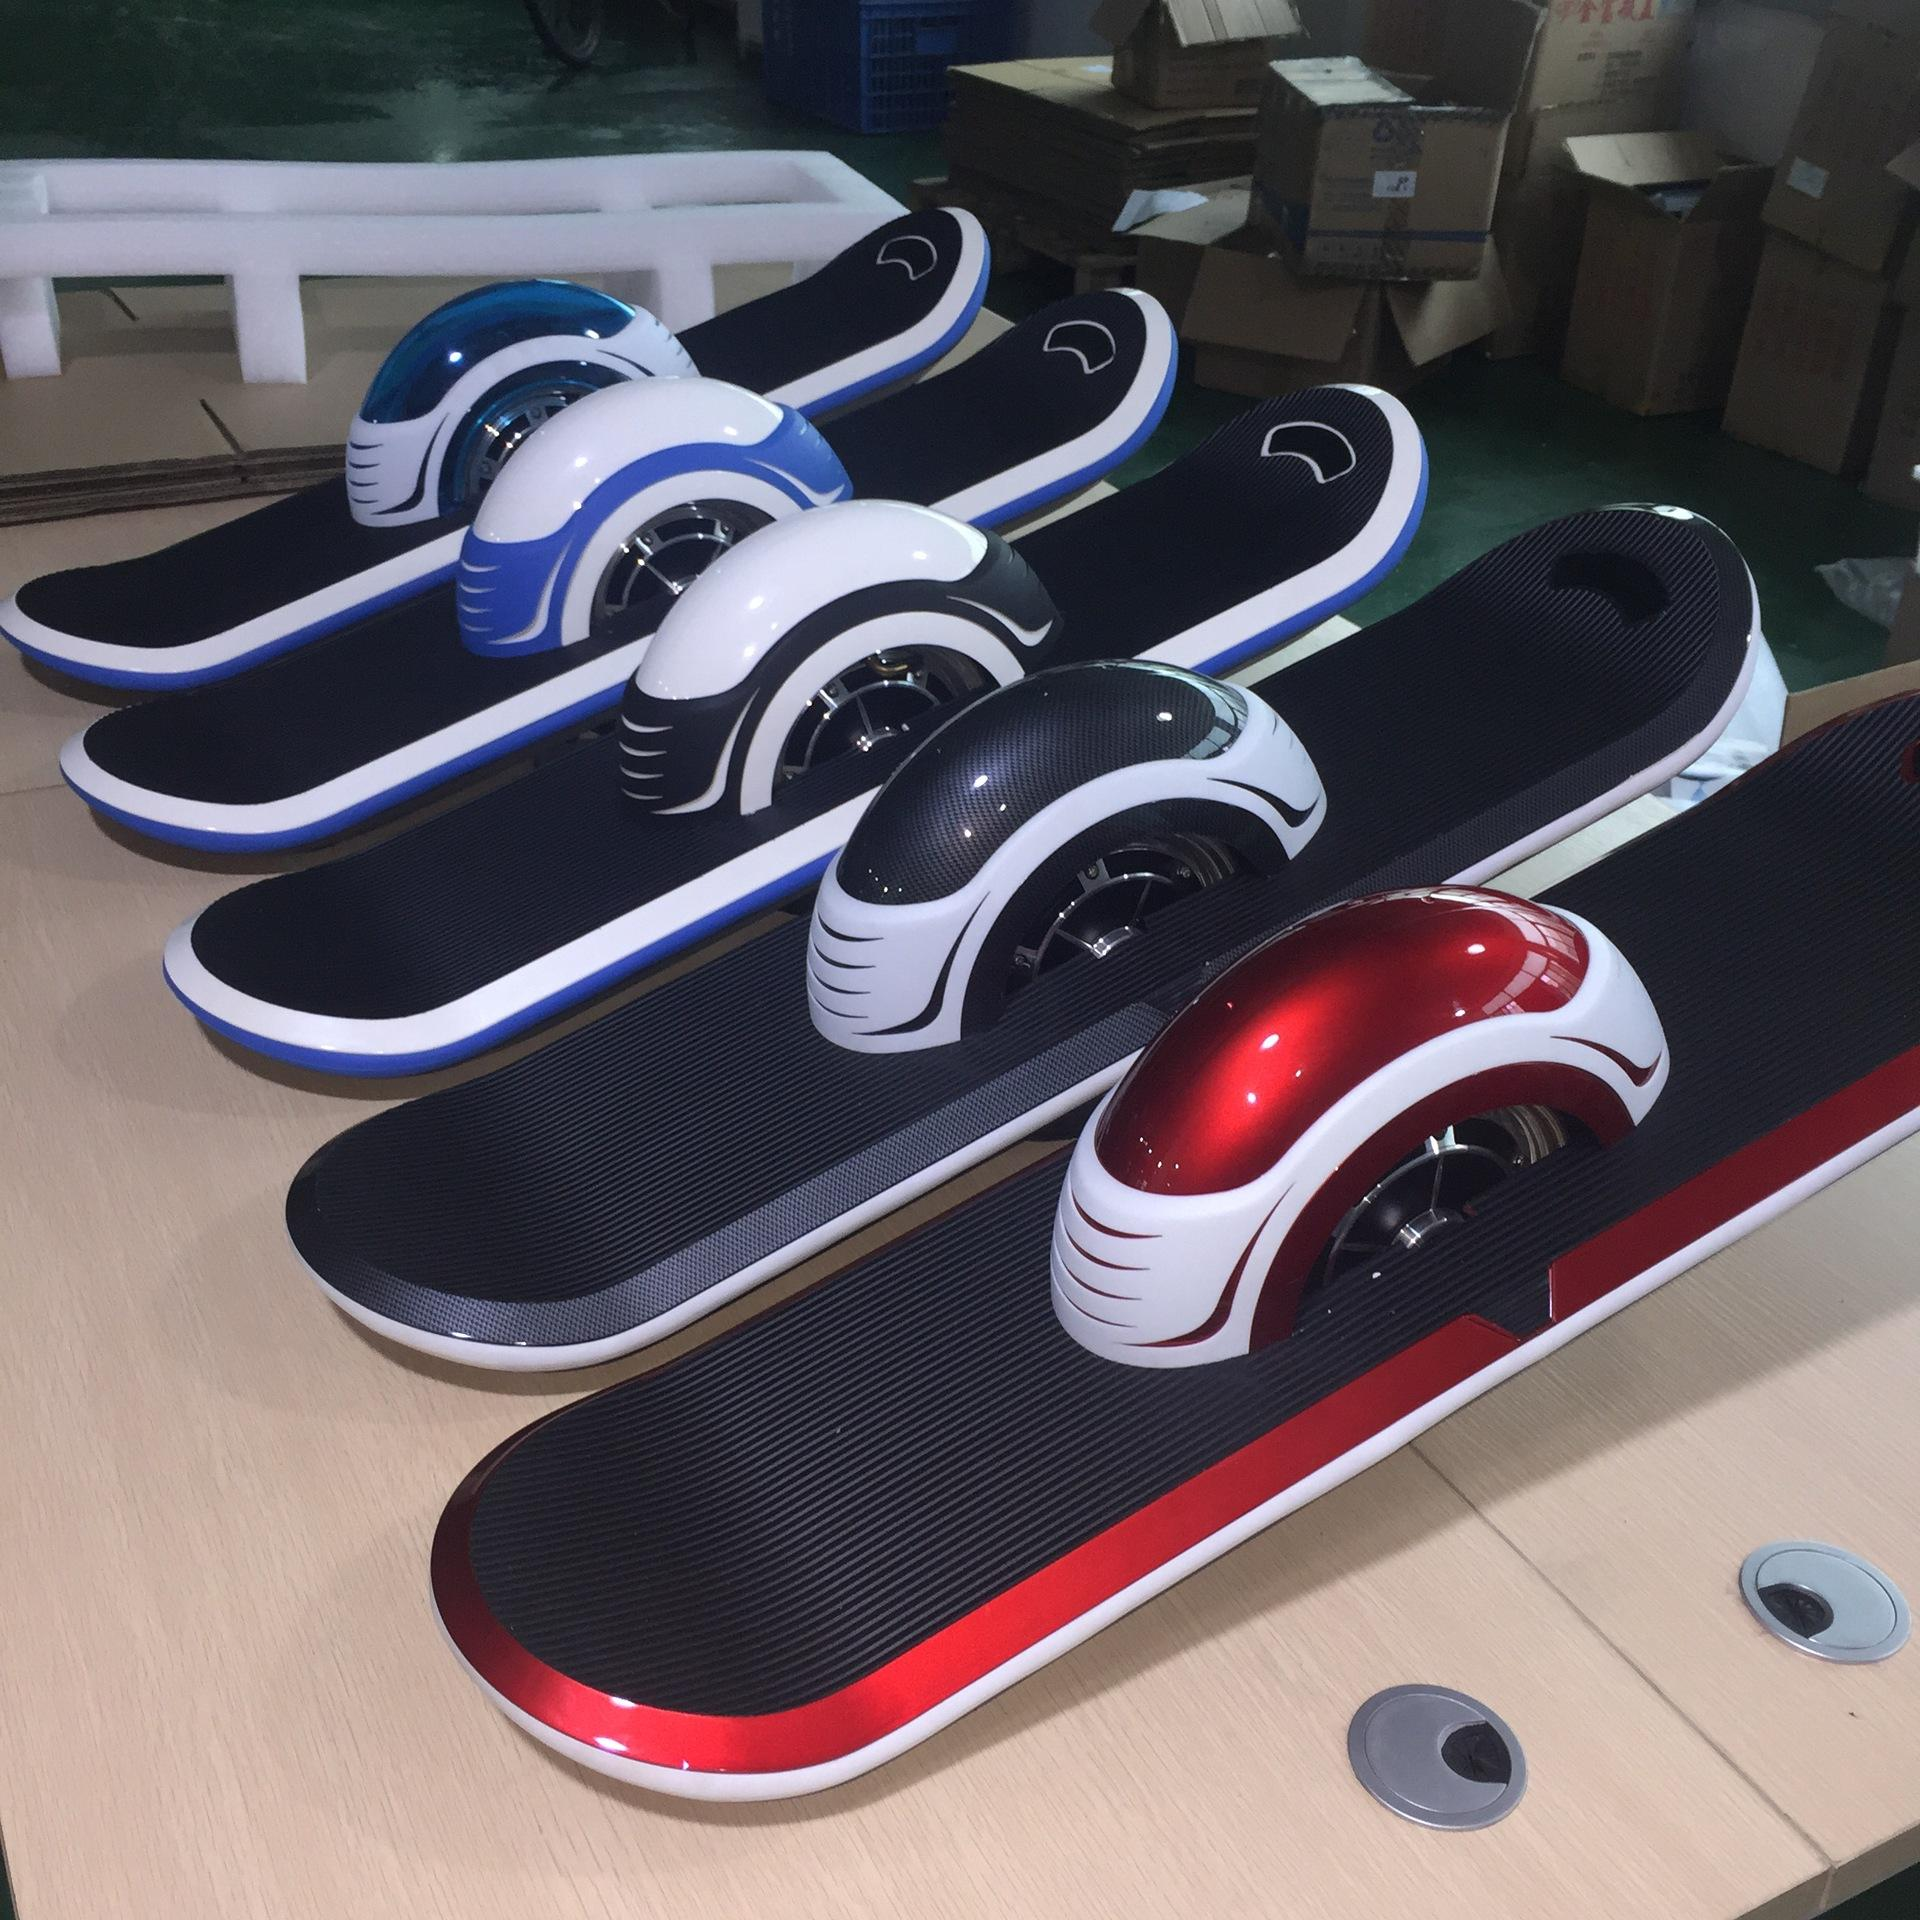 Online New 10inch Samsung Battery One Wheel Electric Skateboard Hoverboard Ue Vacuum Single Scooters Led Light Bluetooth Aliexpress